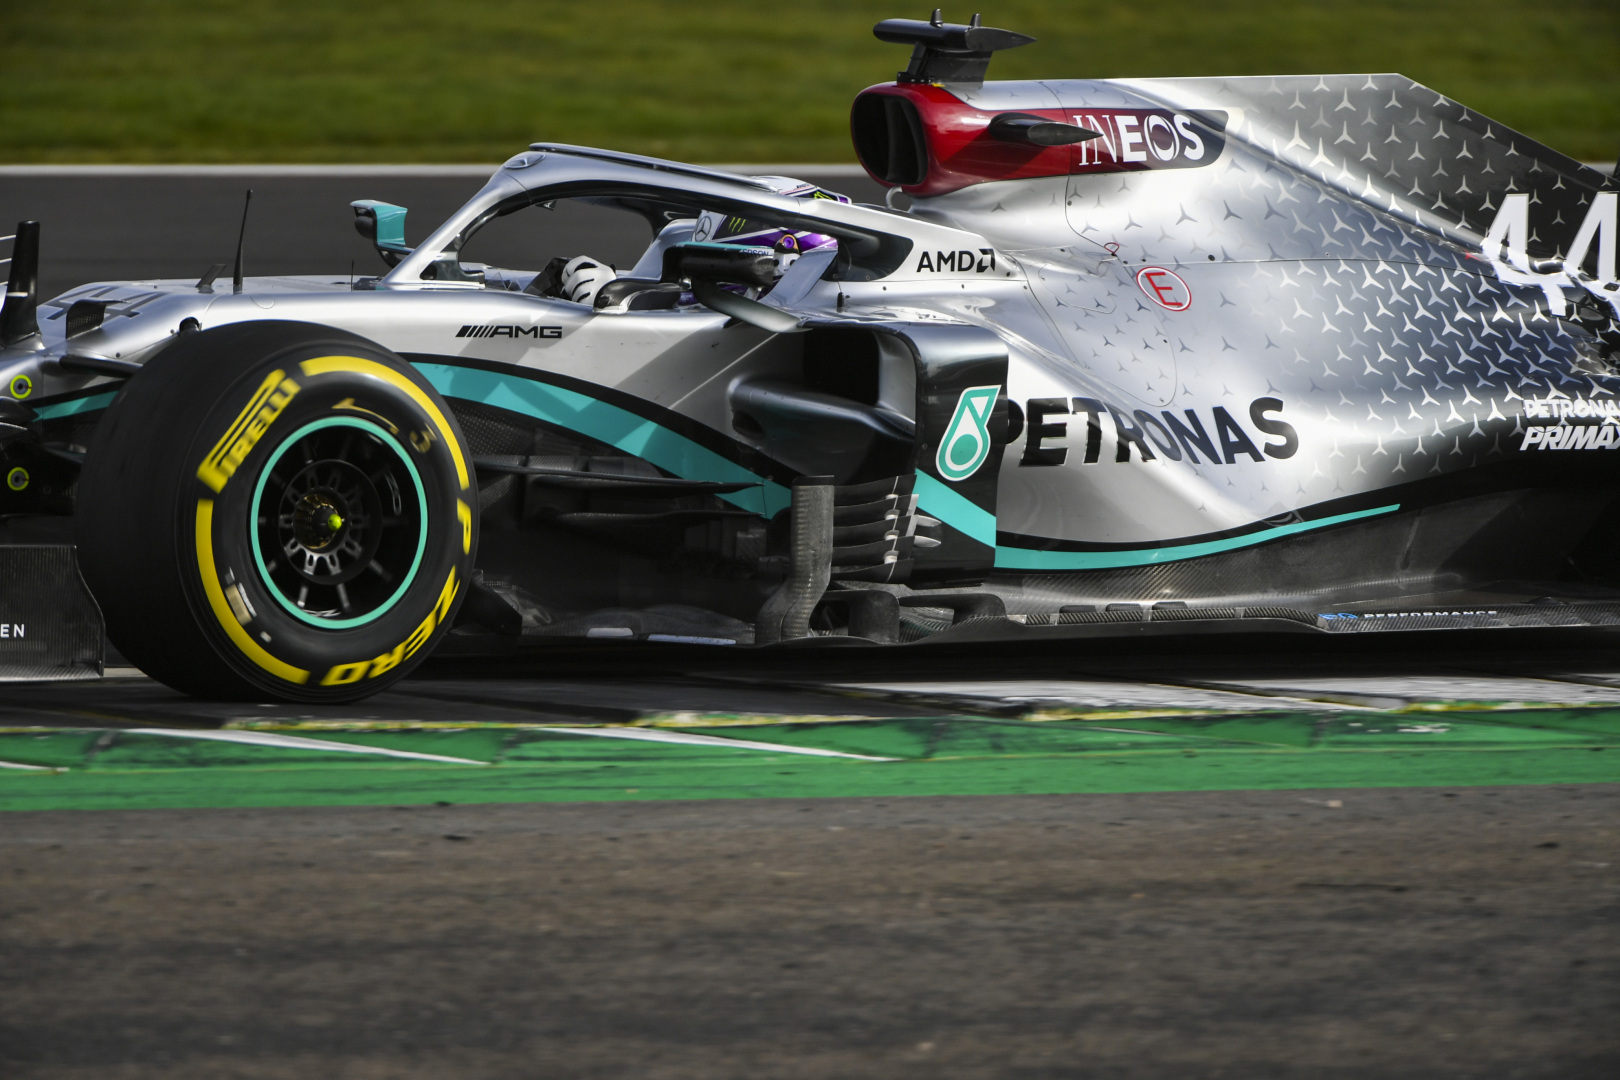 Mercedes aiming to conquer cooling concerns with W11 - F1i.com